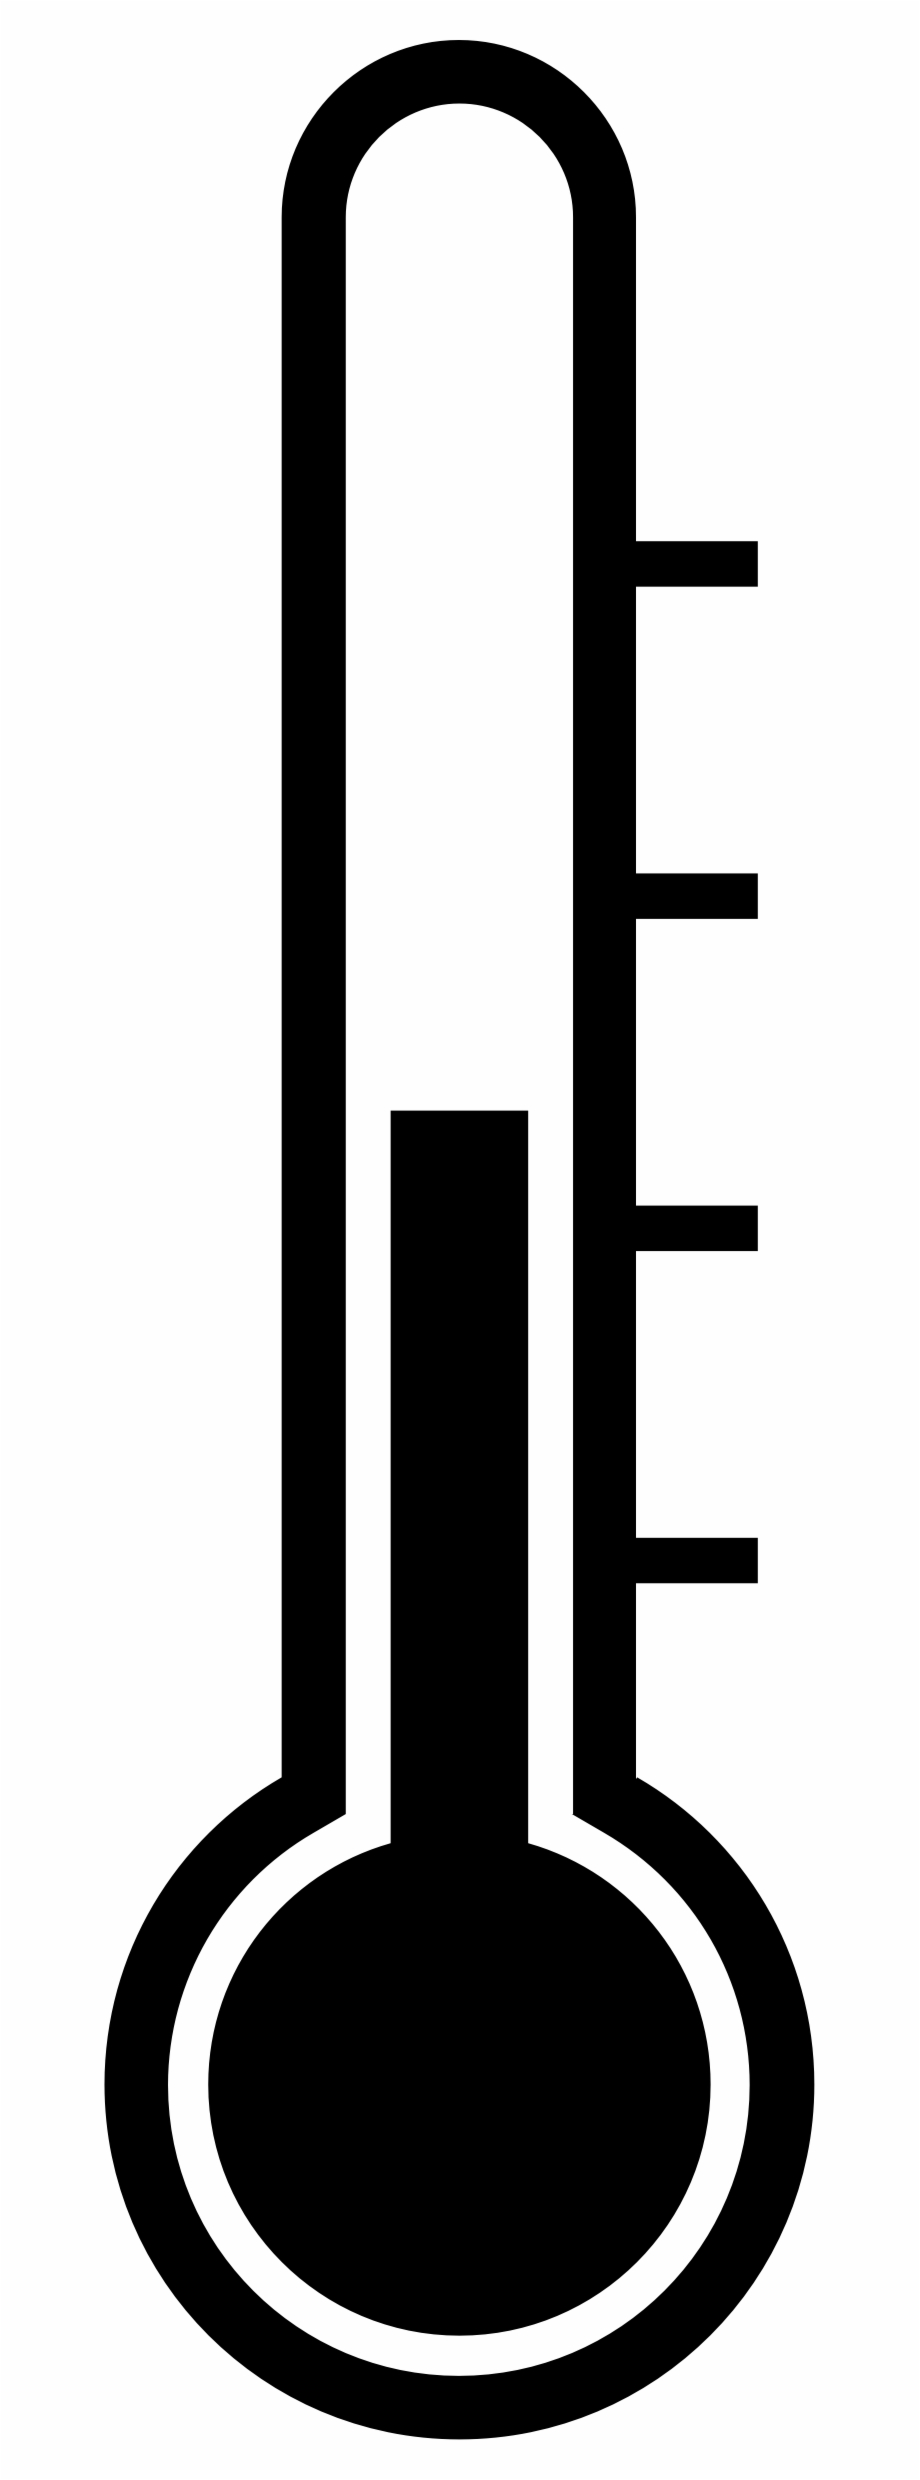 Free Thermometer Clip Art Black And White, Download Free.